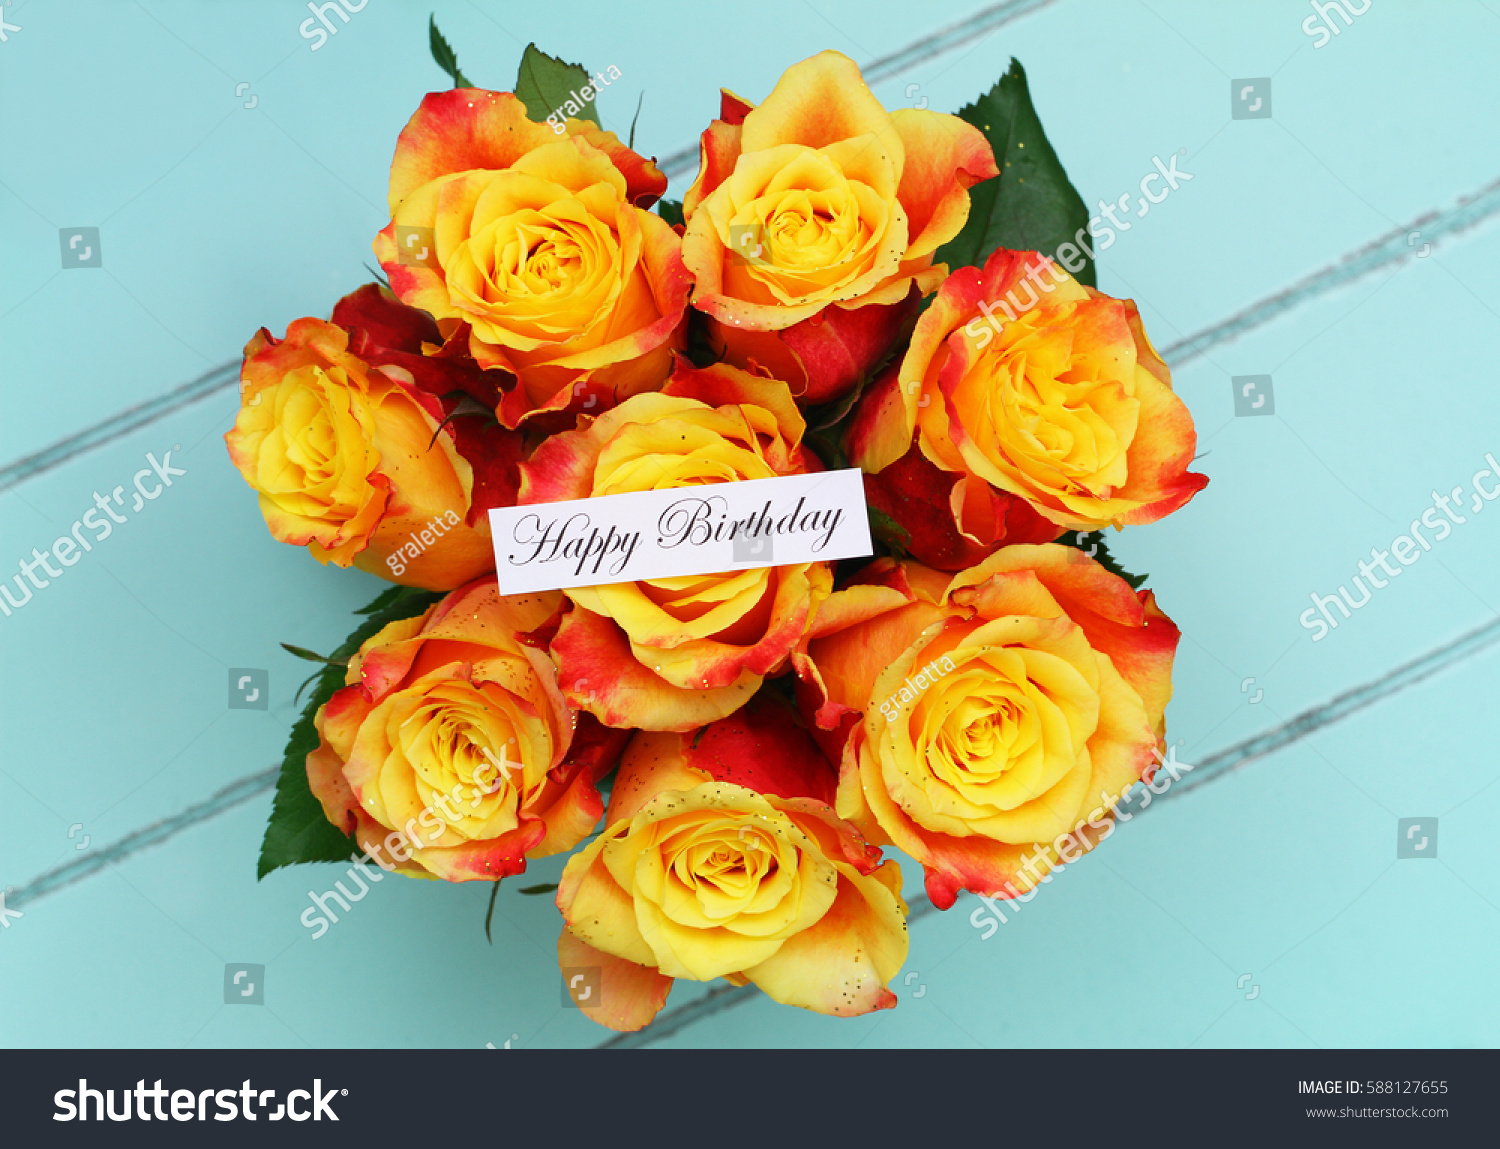 Happy Birthday Card Bouquet Roses Sprinkled Stock Photo (Safe to Use ...